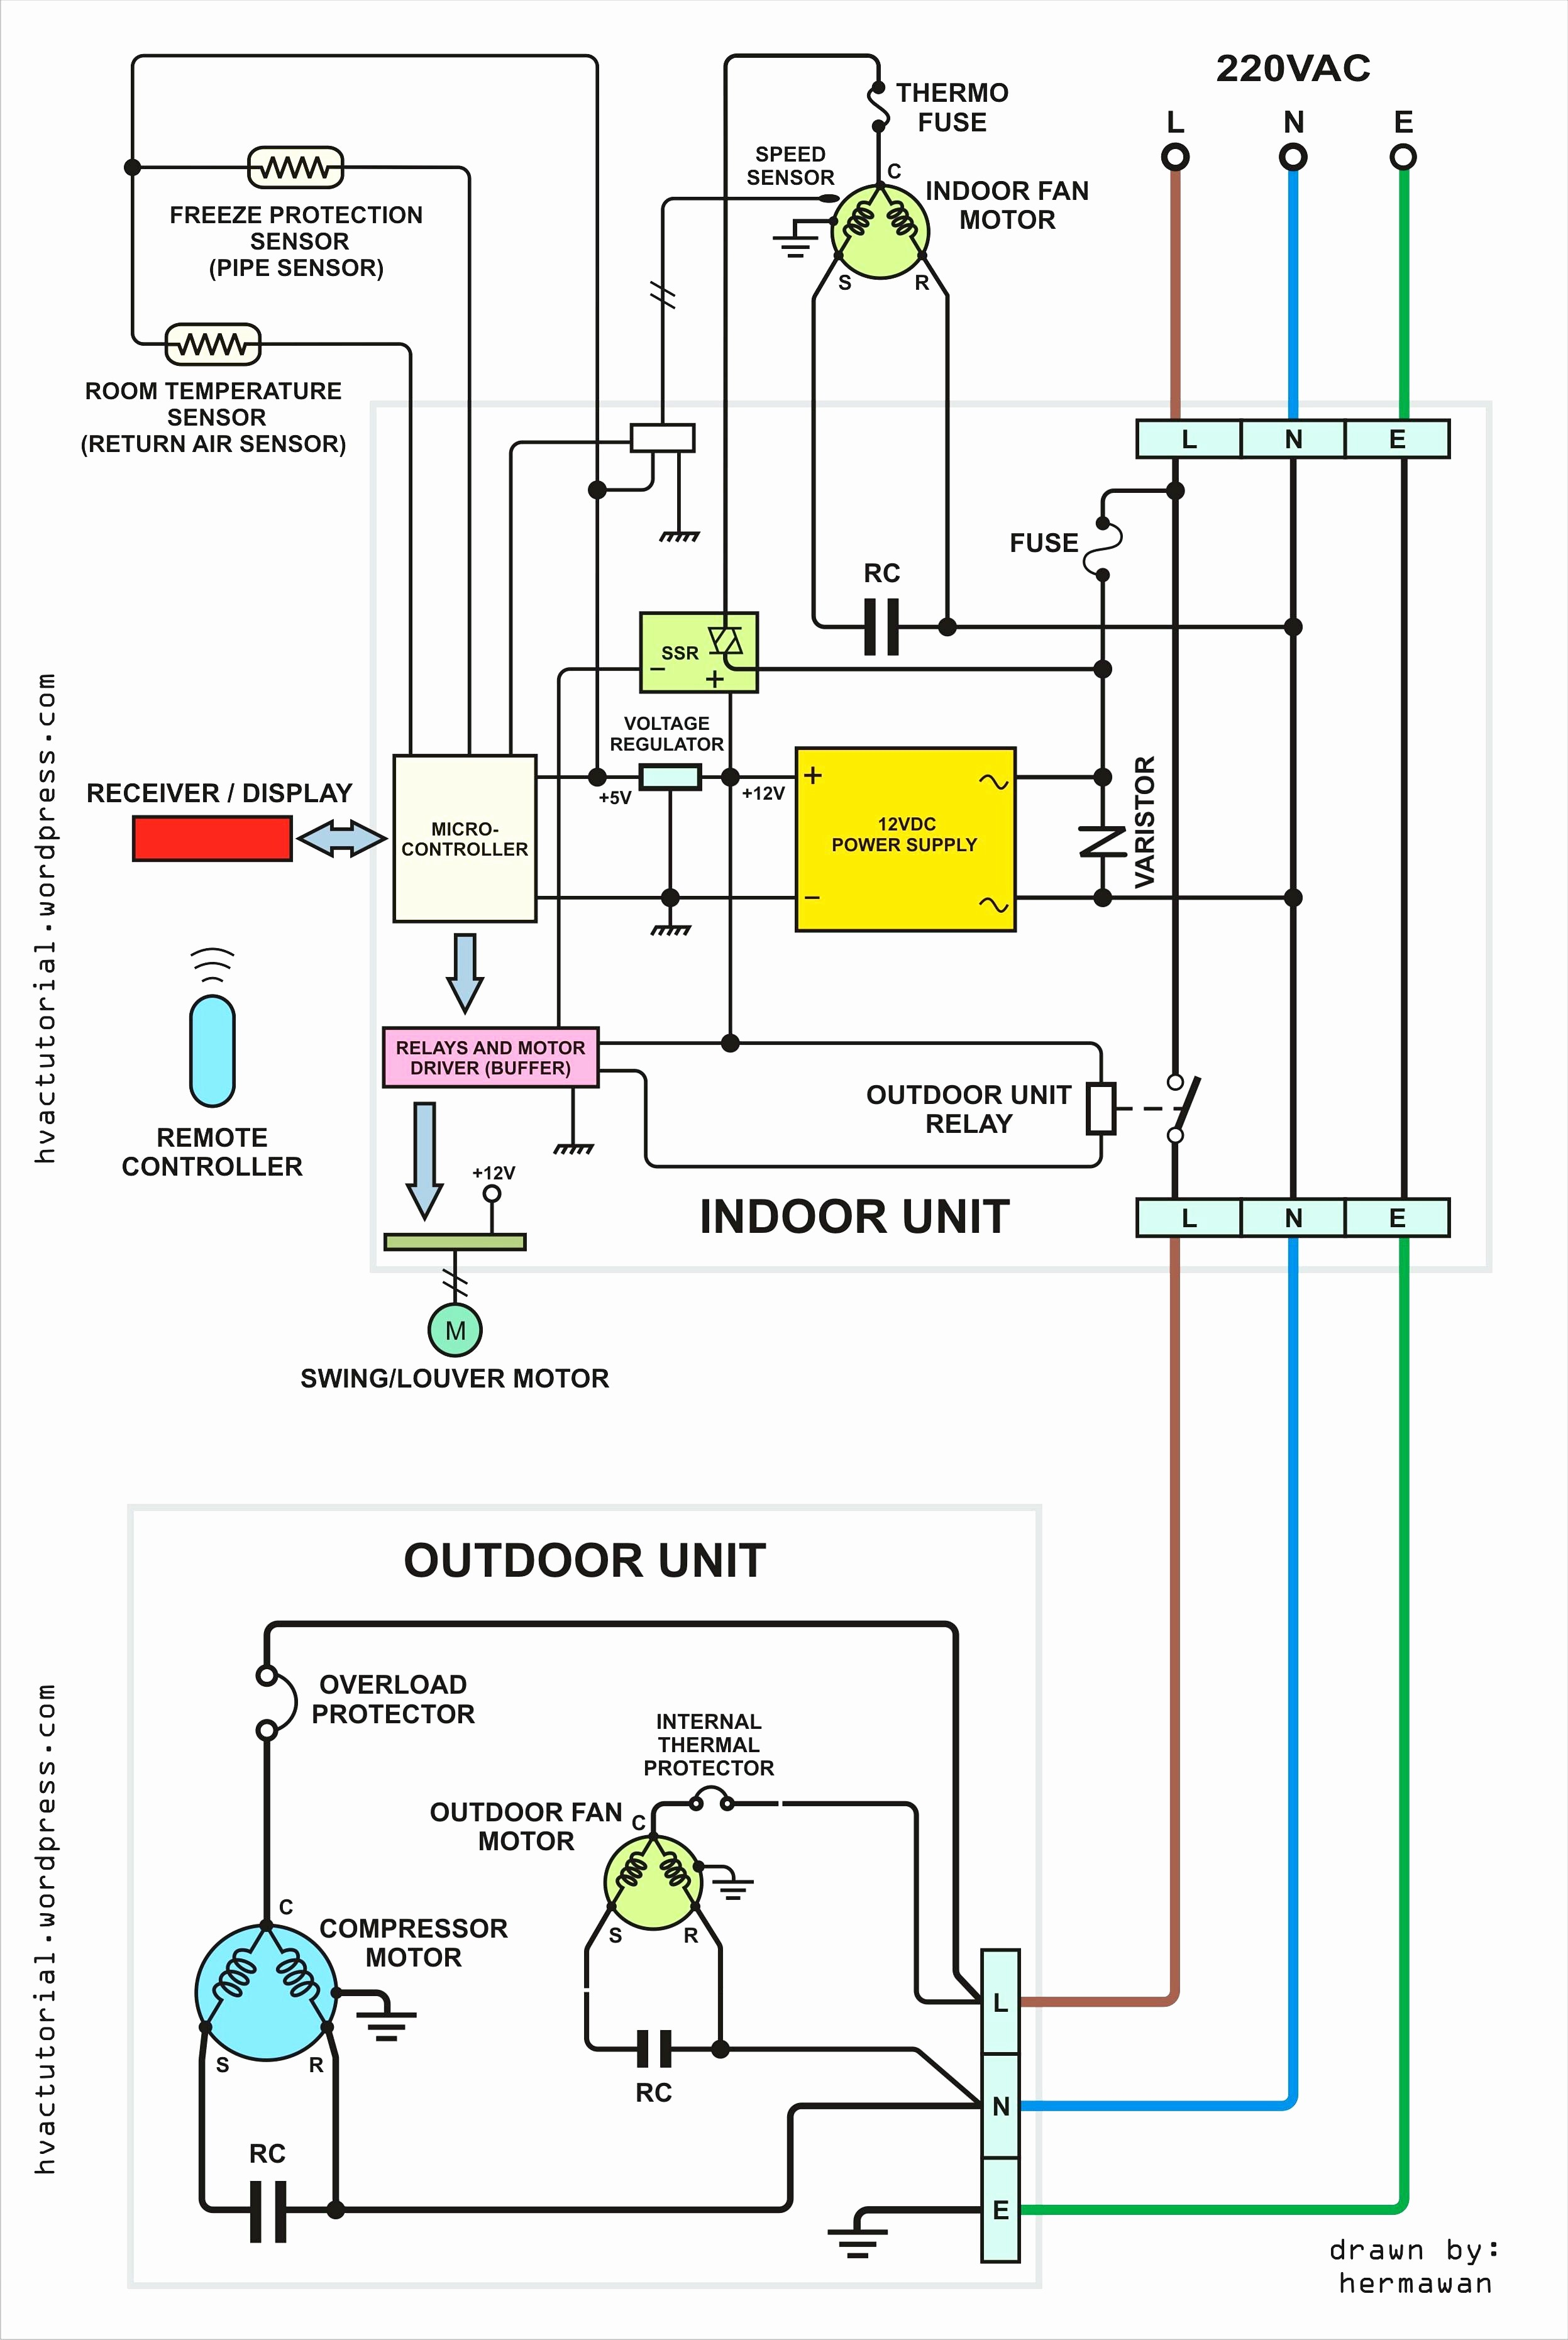 Circuit Diagram Maker software for Anyone Have A Gear Vendors Od Wiring Diagram Dodge Diesel with